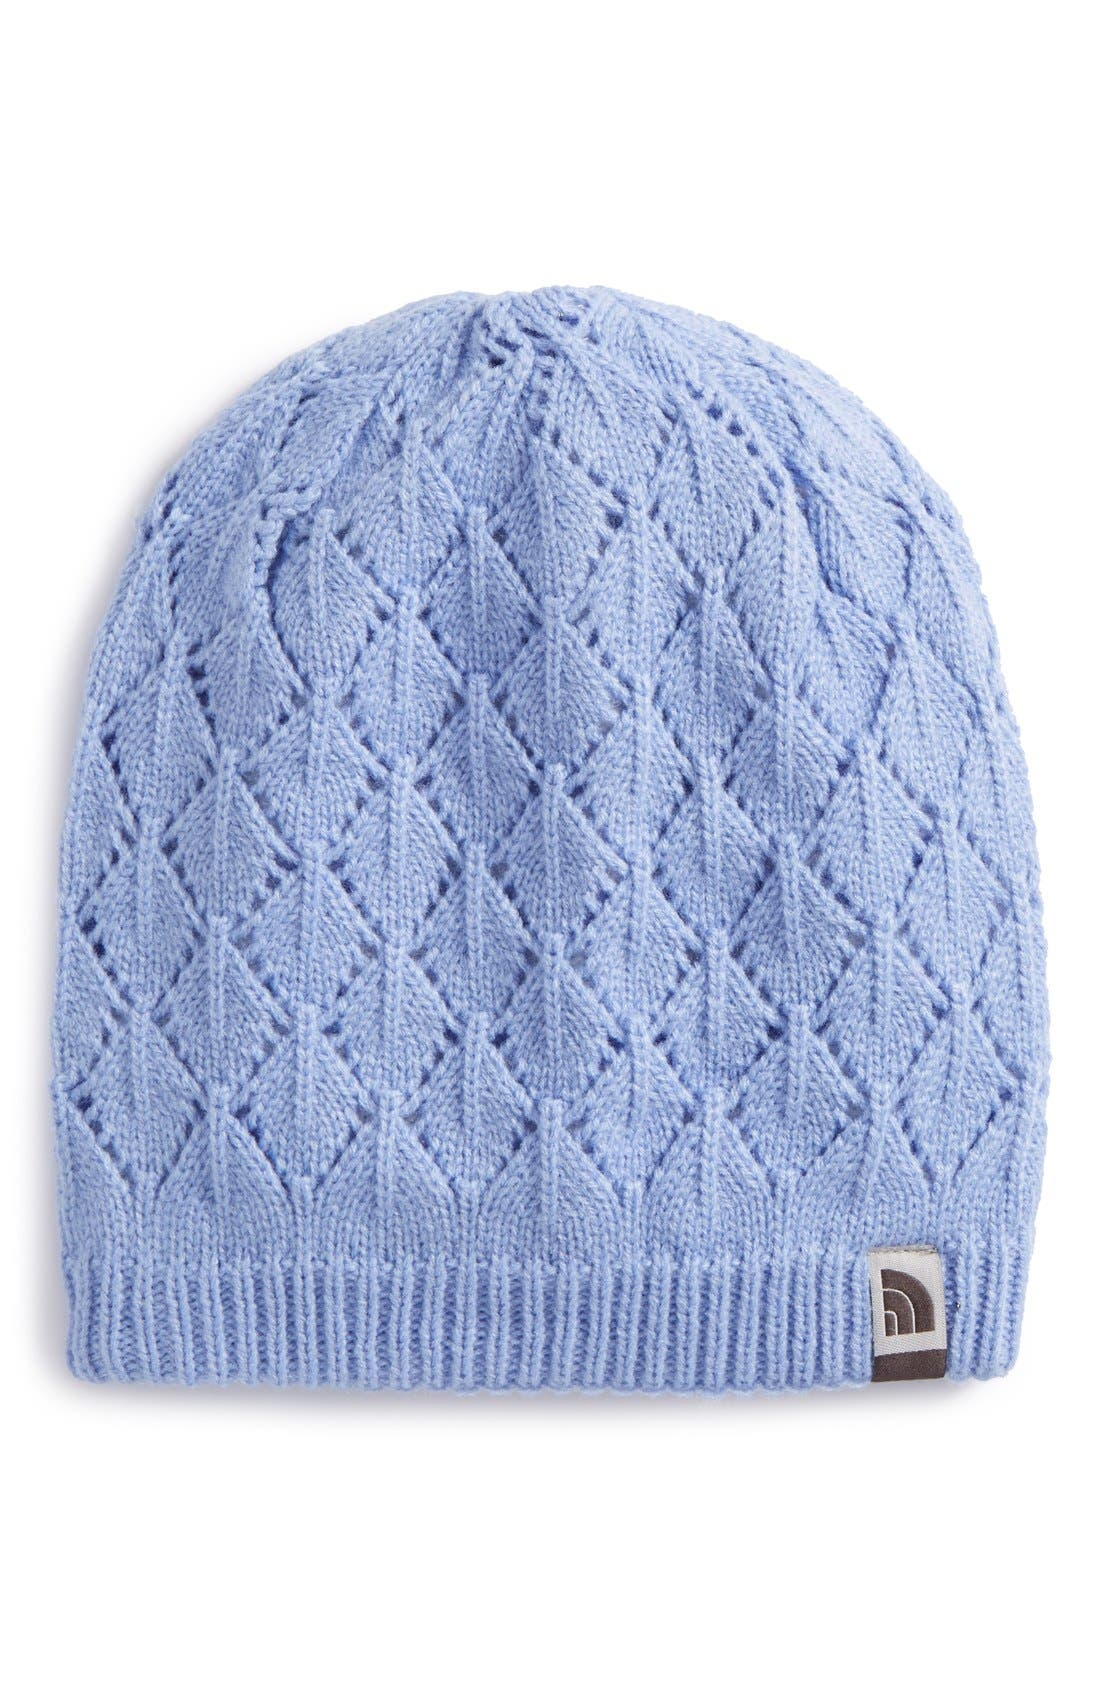 Main Image - The North Face 'Shinto' Reversible Beanie (Girls)